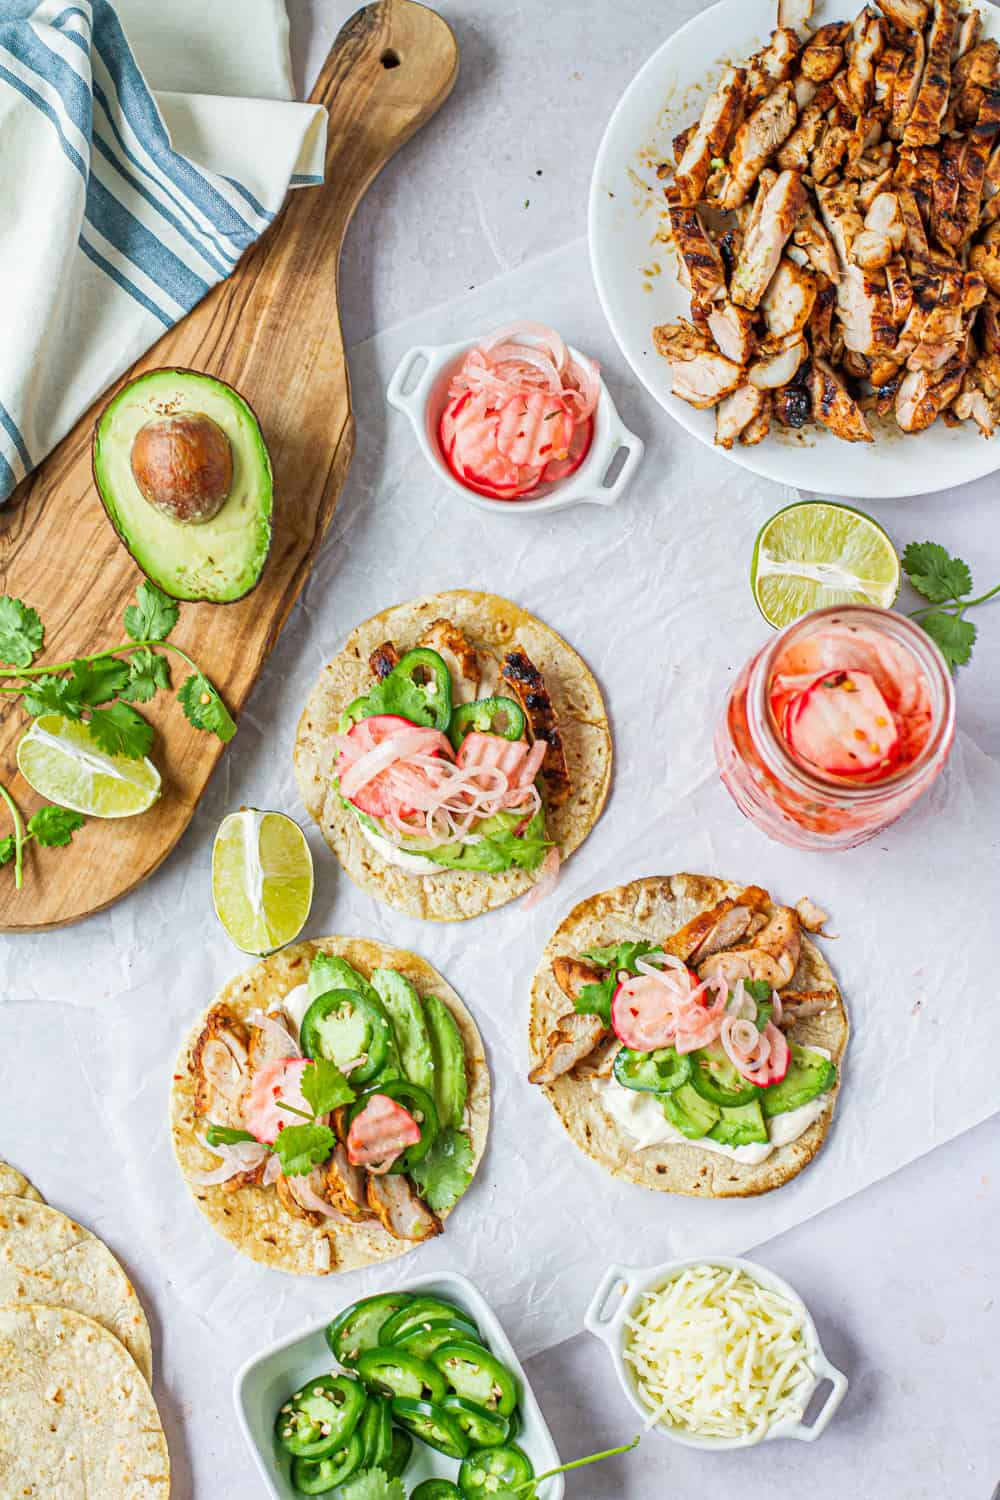 3 margarita tacos with pickled radishes